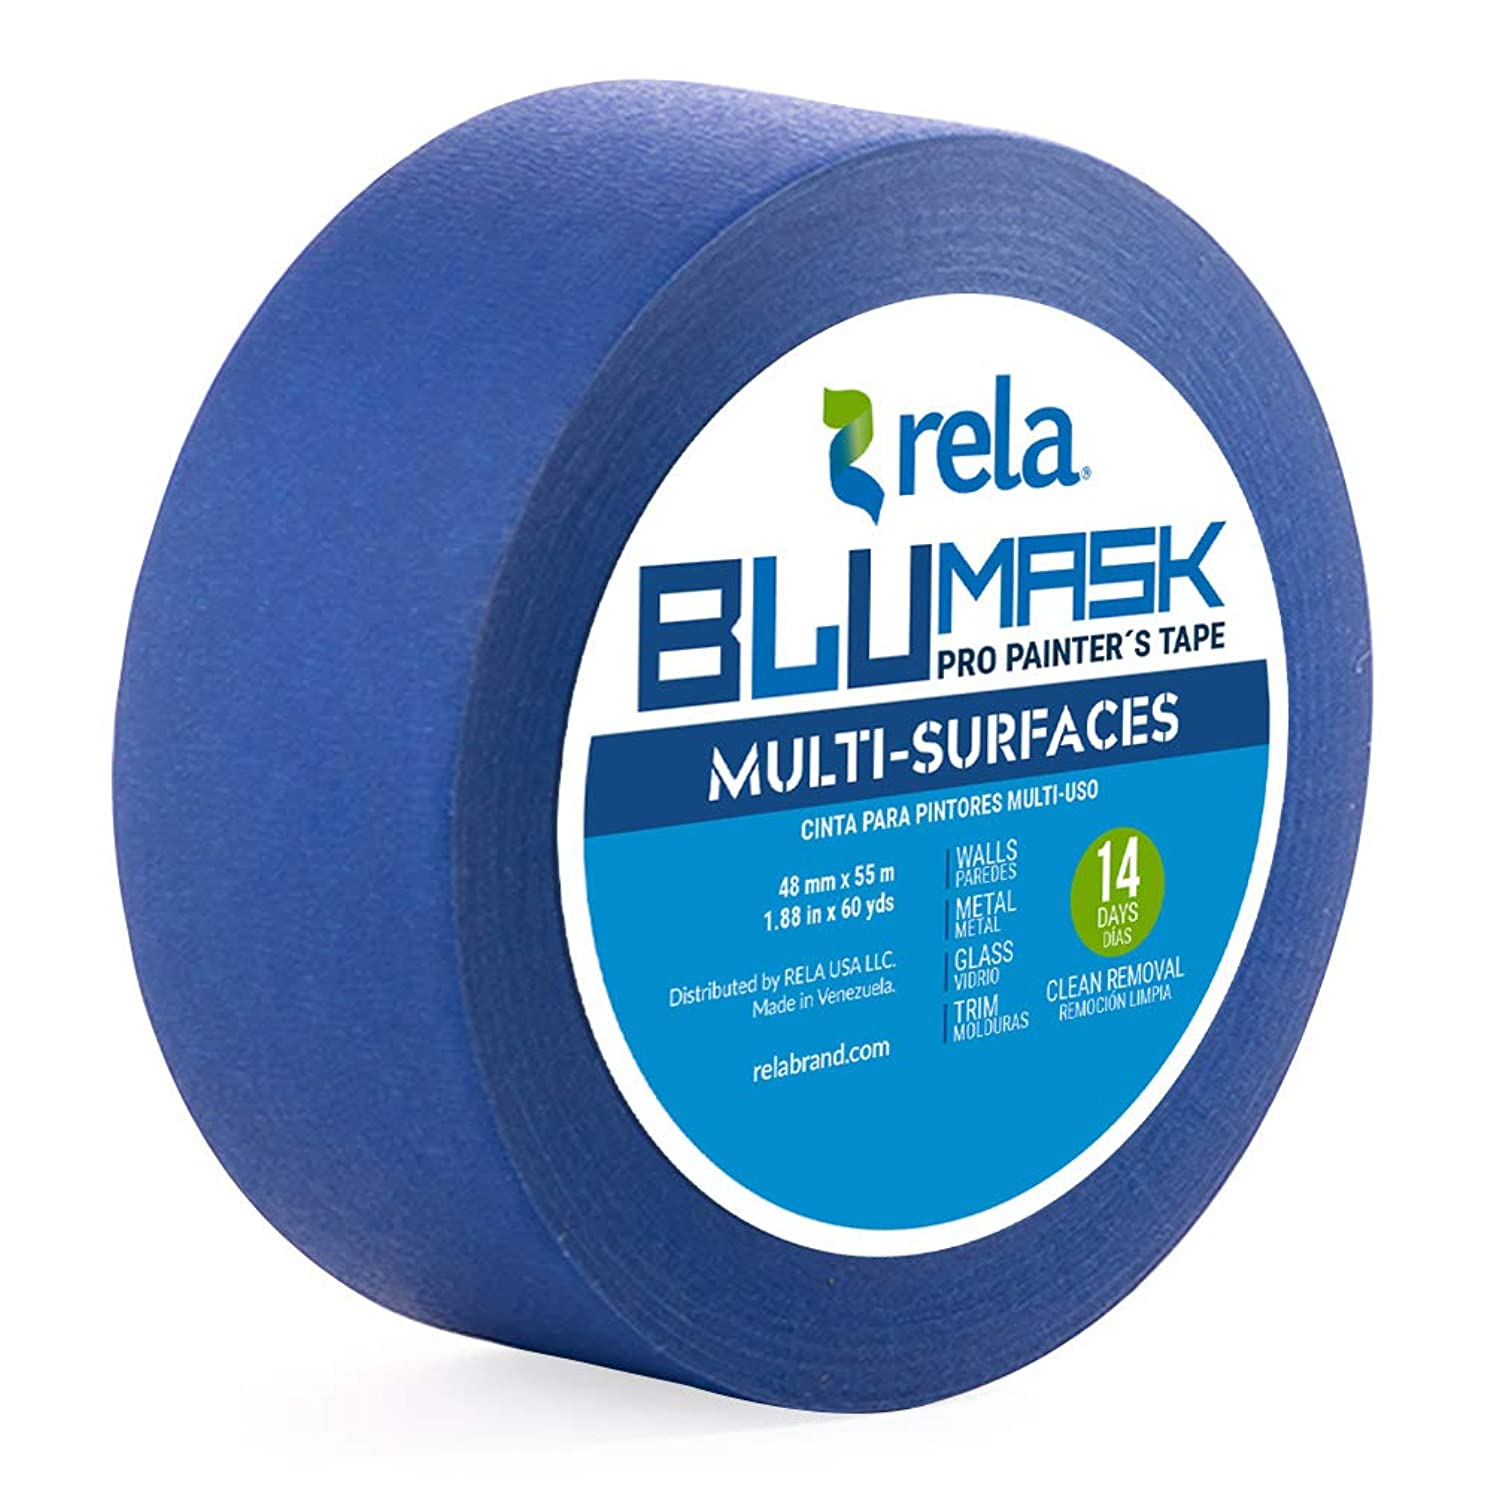 rela Blumask Painter′s Tape Multi-Surfaces, 1.88-Inch by 60-Yard, 1 Roll (1 Pack)